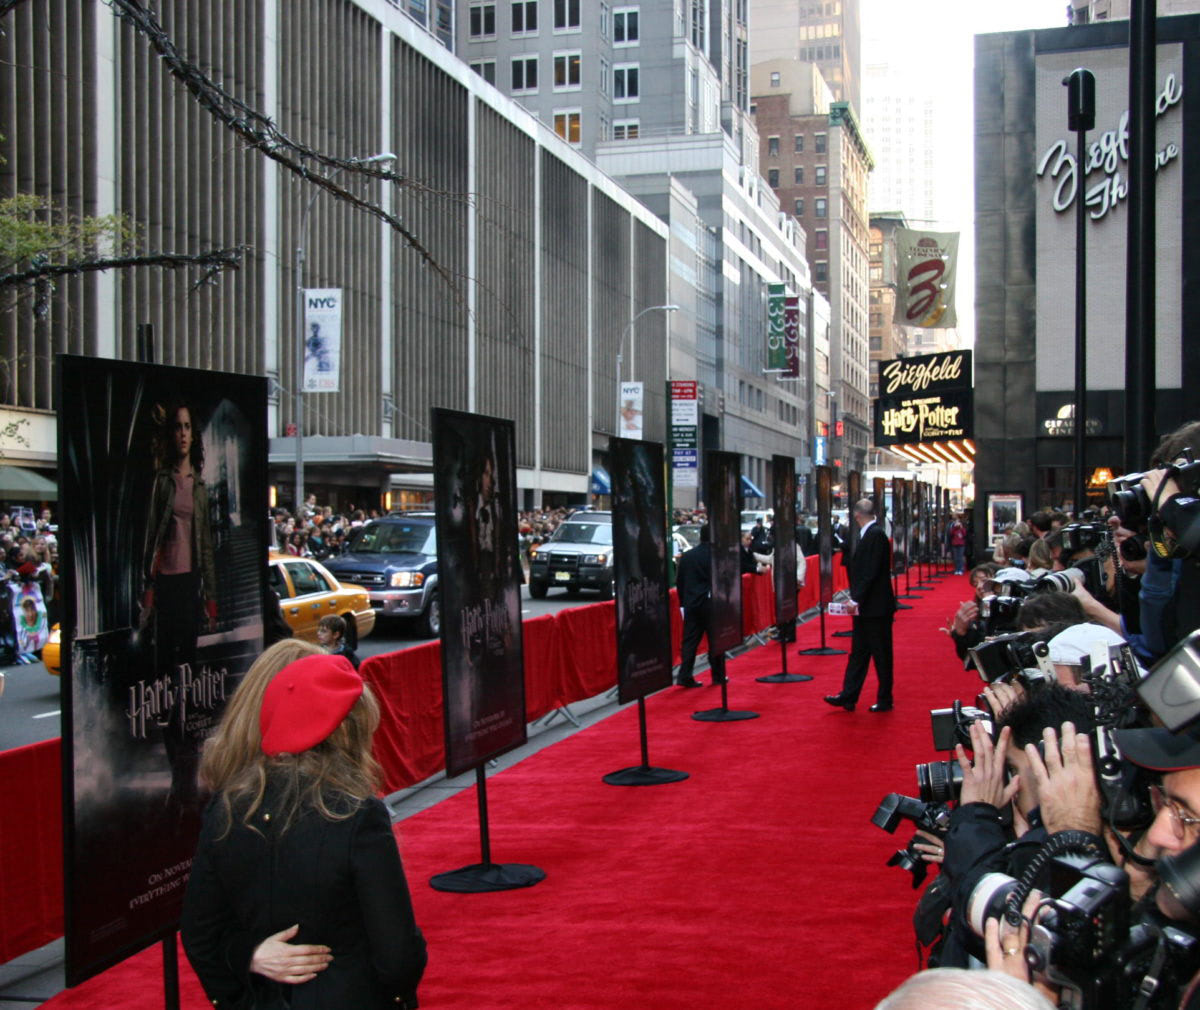 New York City 'Goblet of Fire' red carpet premiere